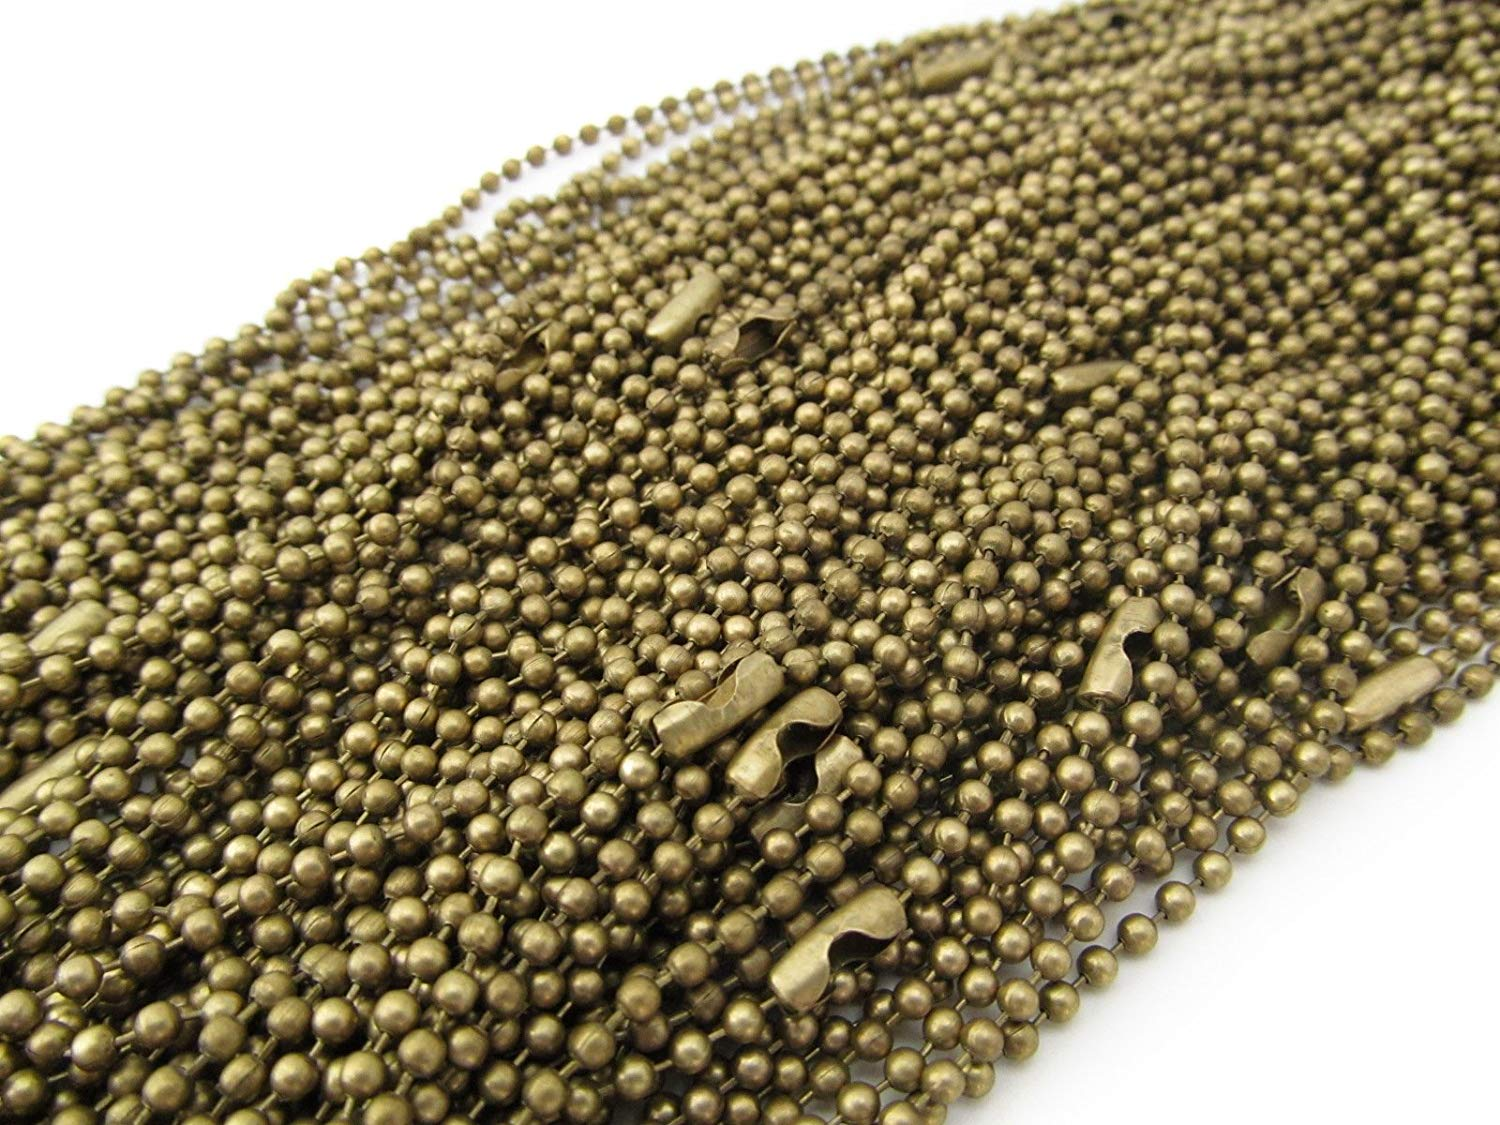 """50 CleverDelights Ball Chain Necklaces - Antique Bronze Color - 24 Inch - Jewelry Findings - 2.4mm Ball - Adjustable Antiqued Necklaces - 24"""" Length"""